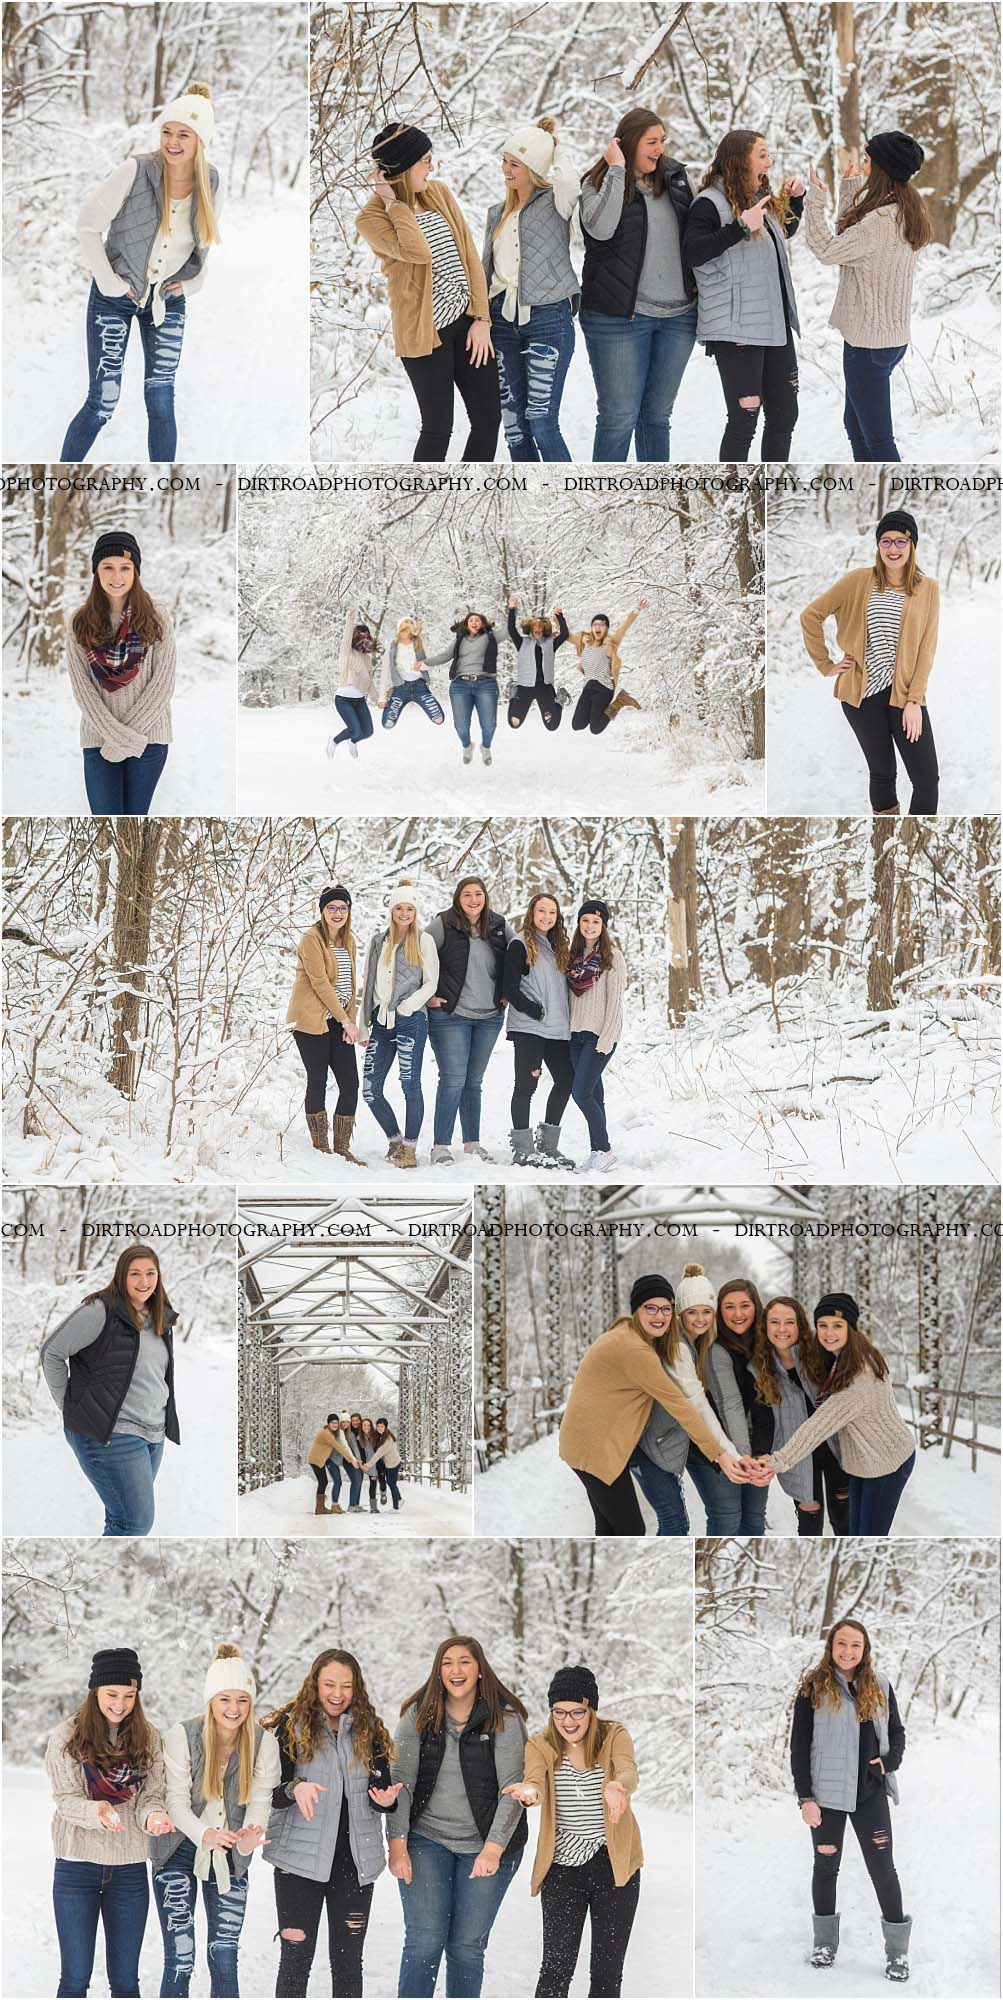 picture of high school senior girls from high schools in nebraska including wilber-clatonia high school, milford high school, friend high school, tri-county high school and norris high school. girls are in blue jeans with cream and white sweaters and winter boots, playing in snow with puffer vests and cc beanie caps. girls laughing and taking pictures in snow throwing it in the air for high school photography dirt road photography by kelsey homolka nerud photographer.